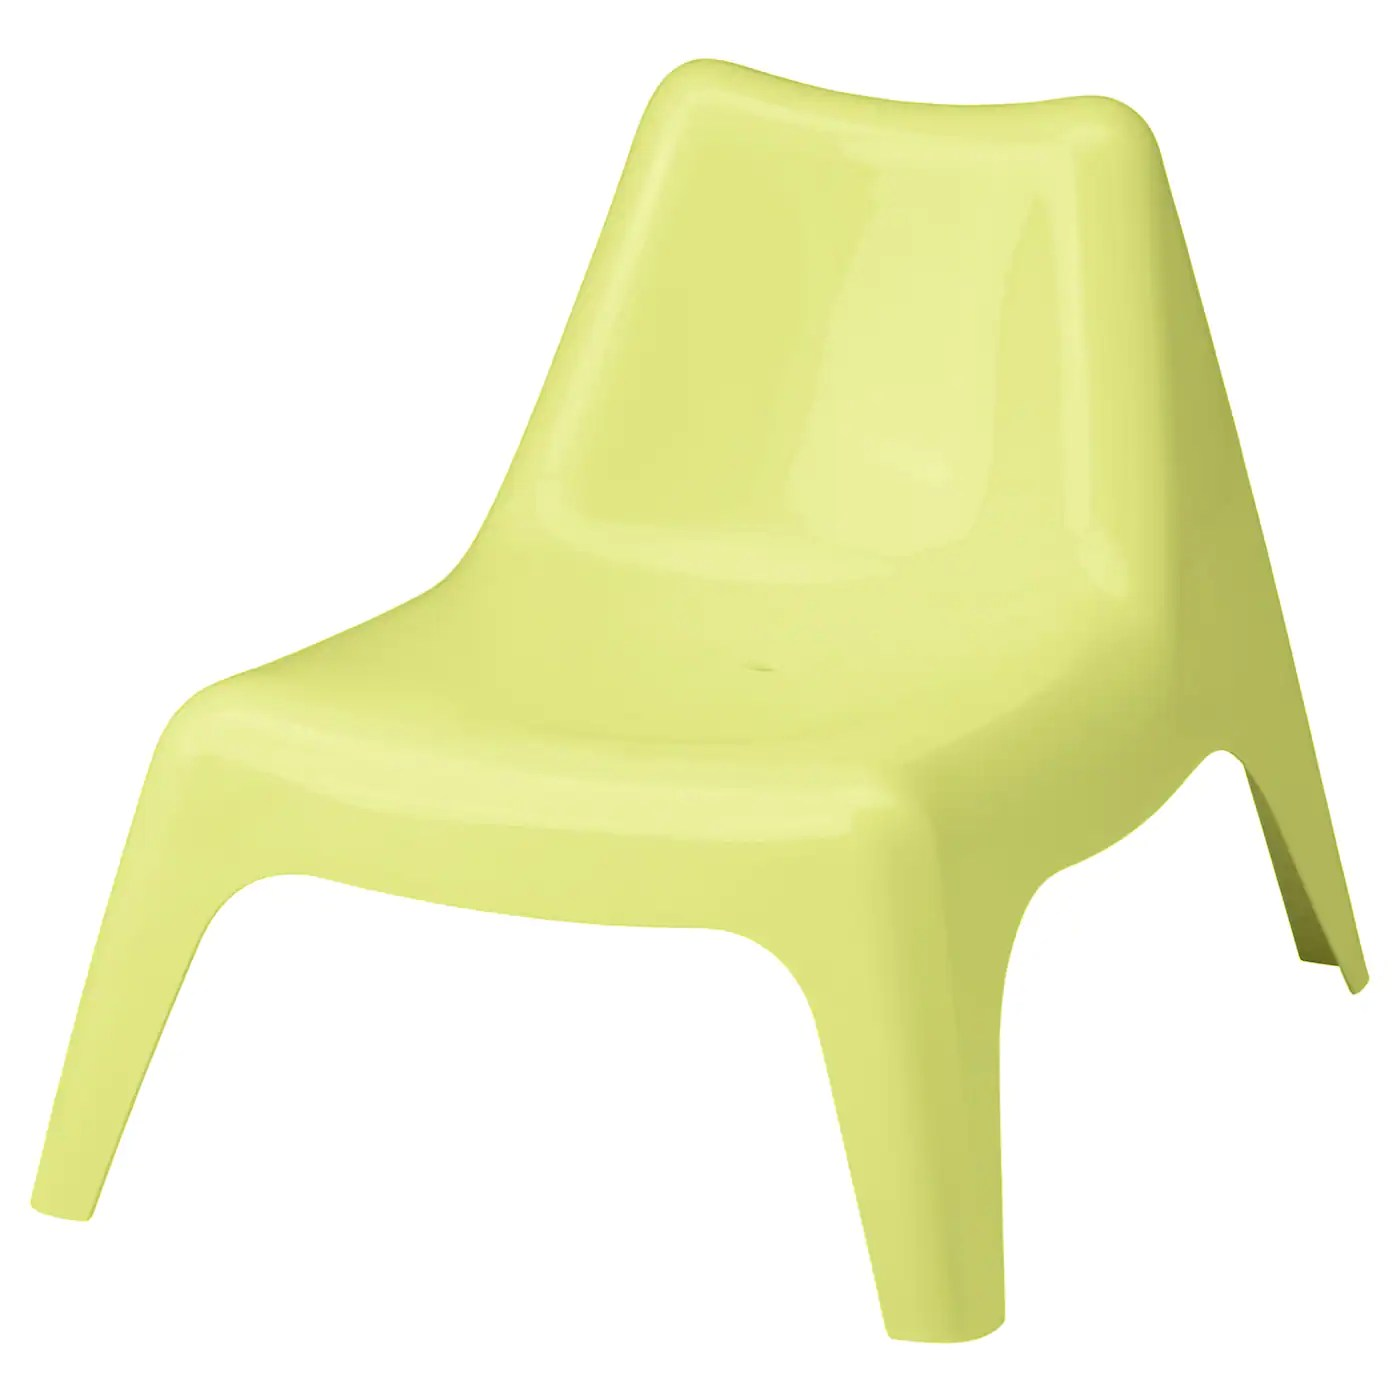 Kids Easy Chair Outdoor And Garden Seating Ikea Ireland Dublin